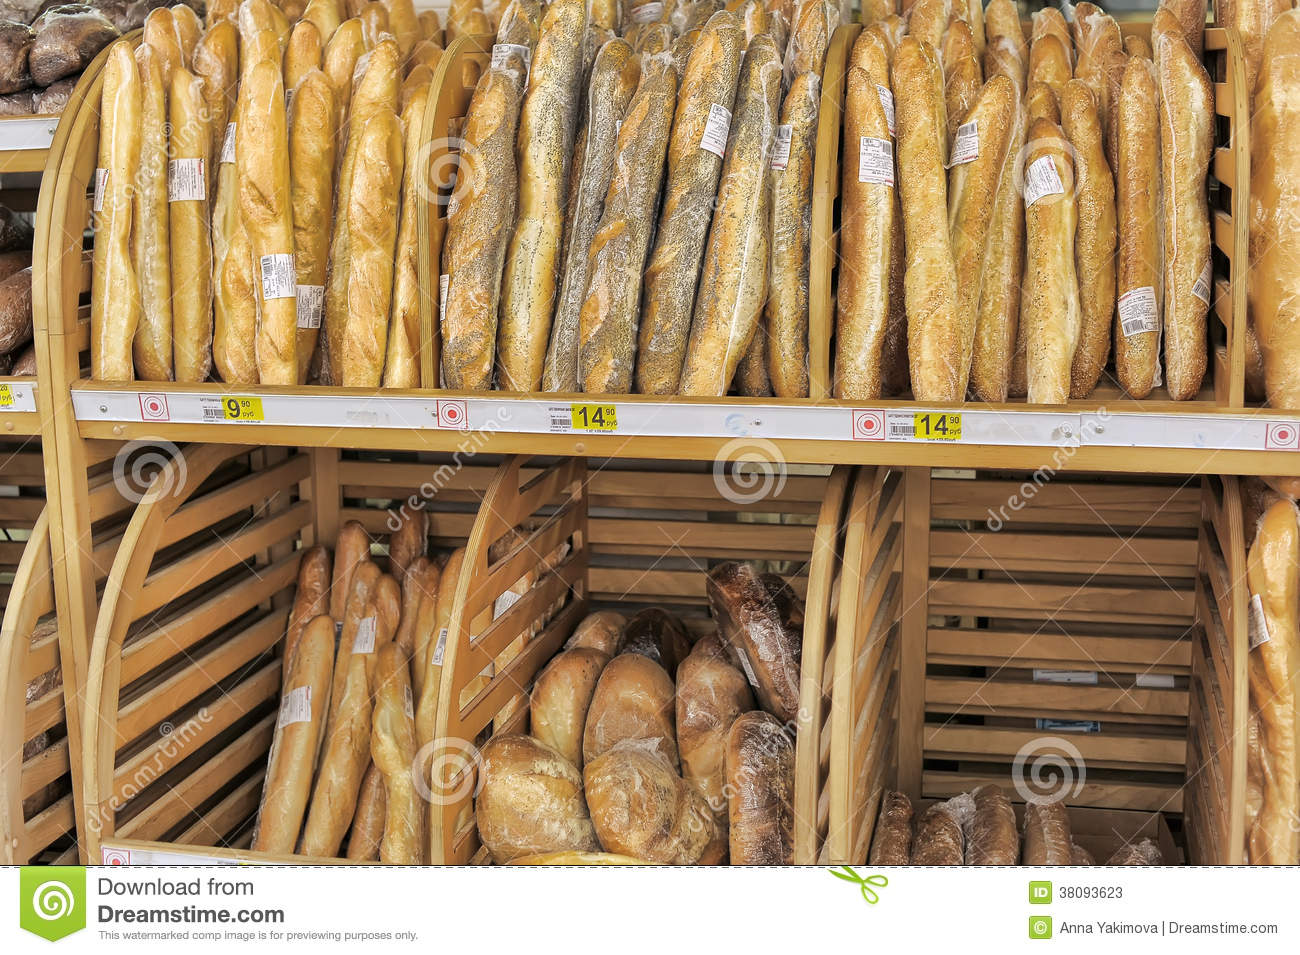 Bread for sale on a store shelves.